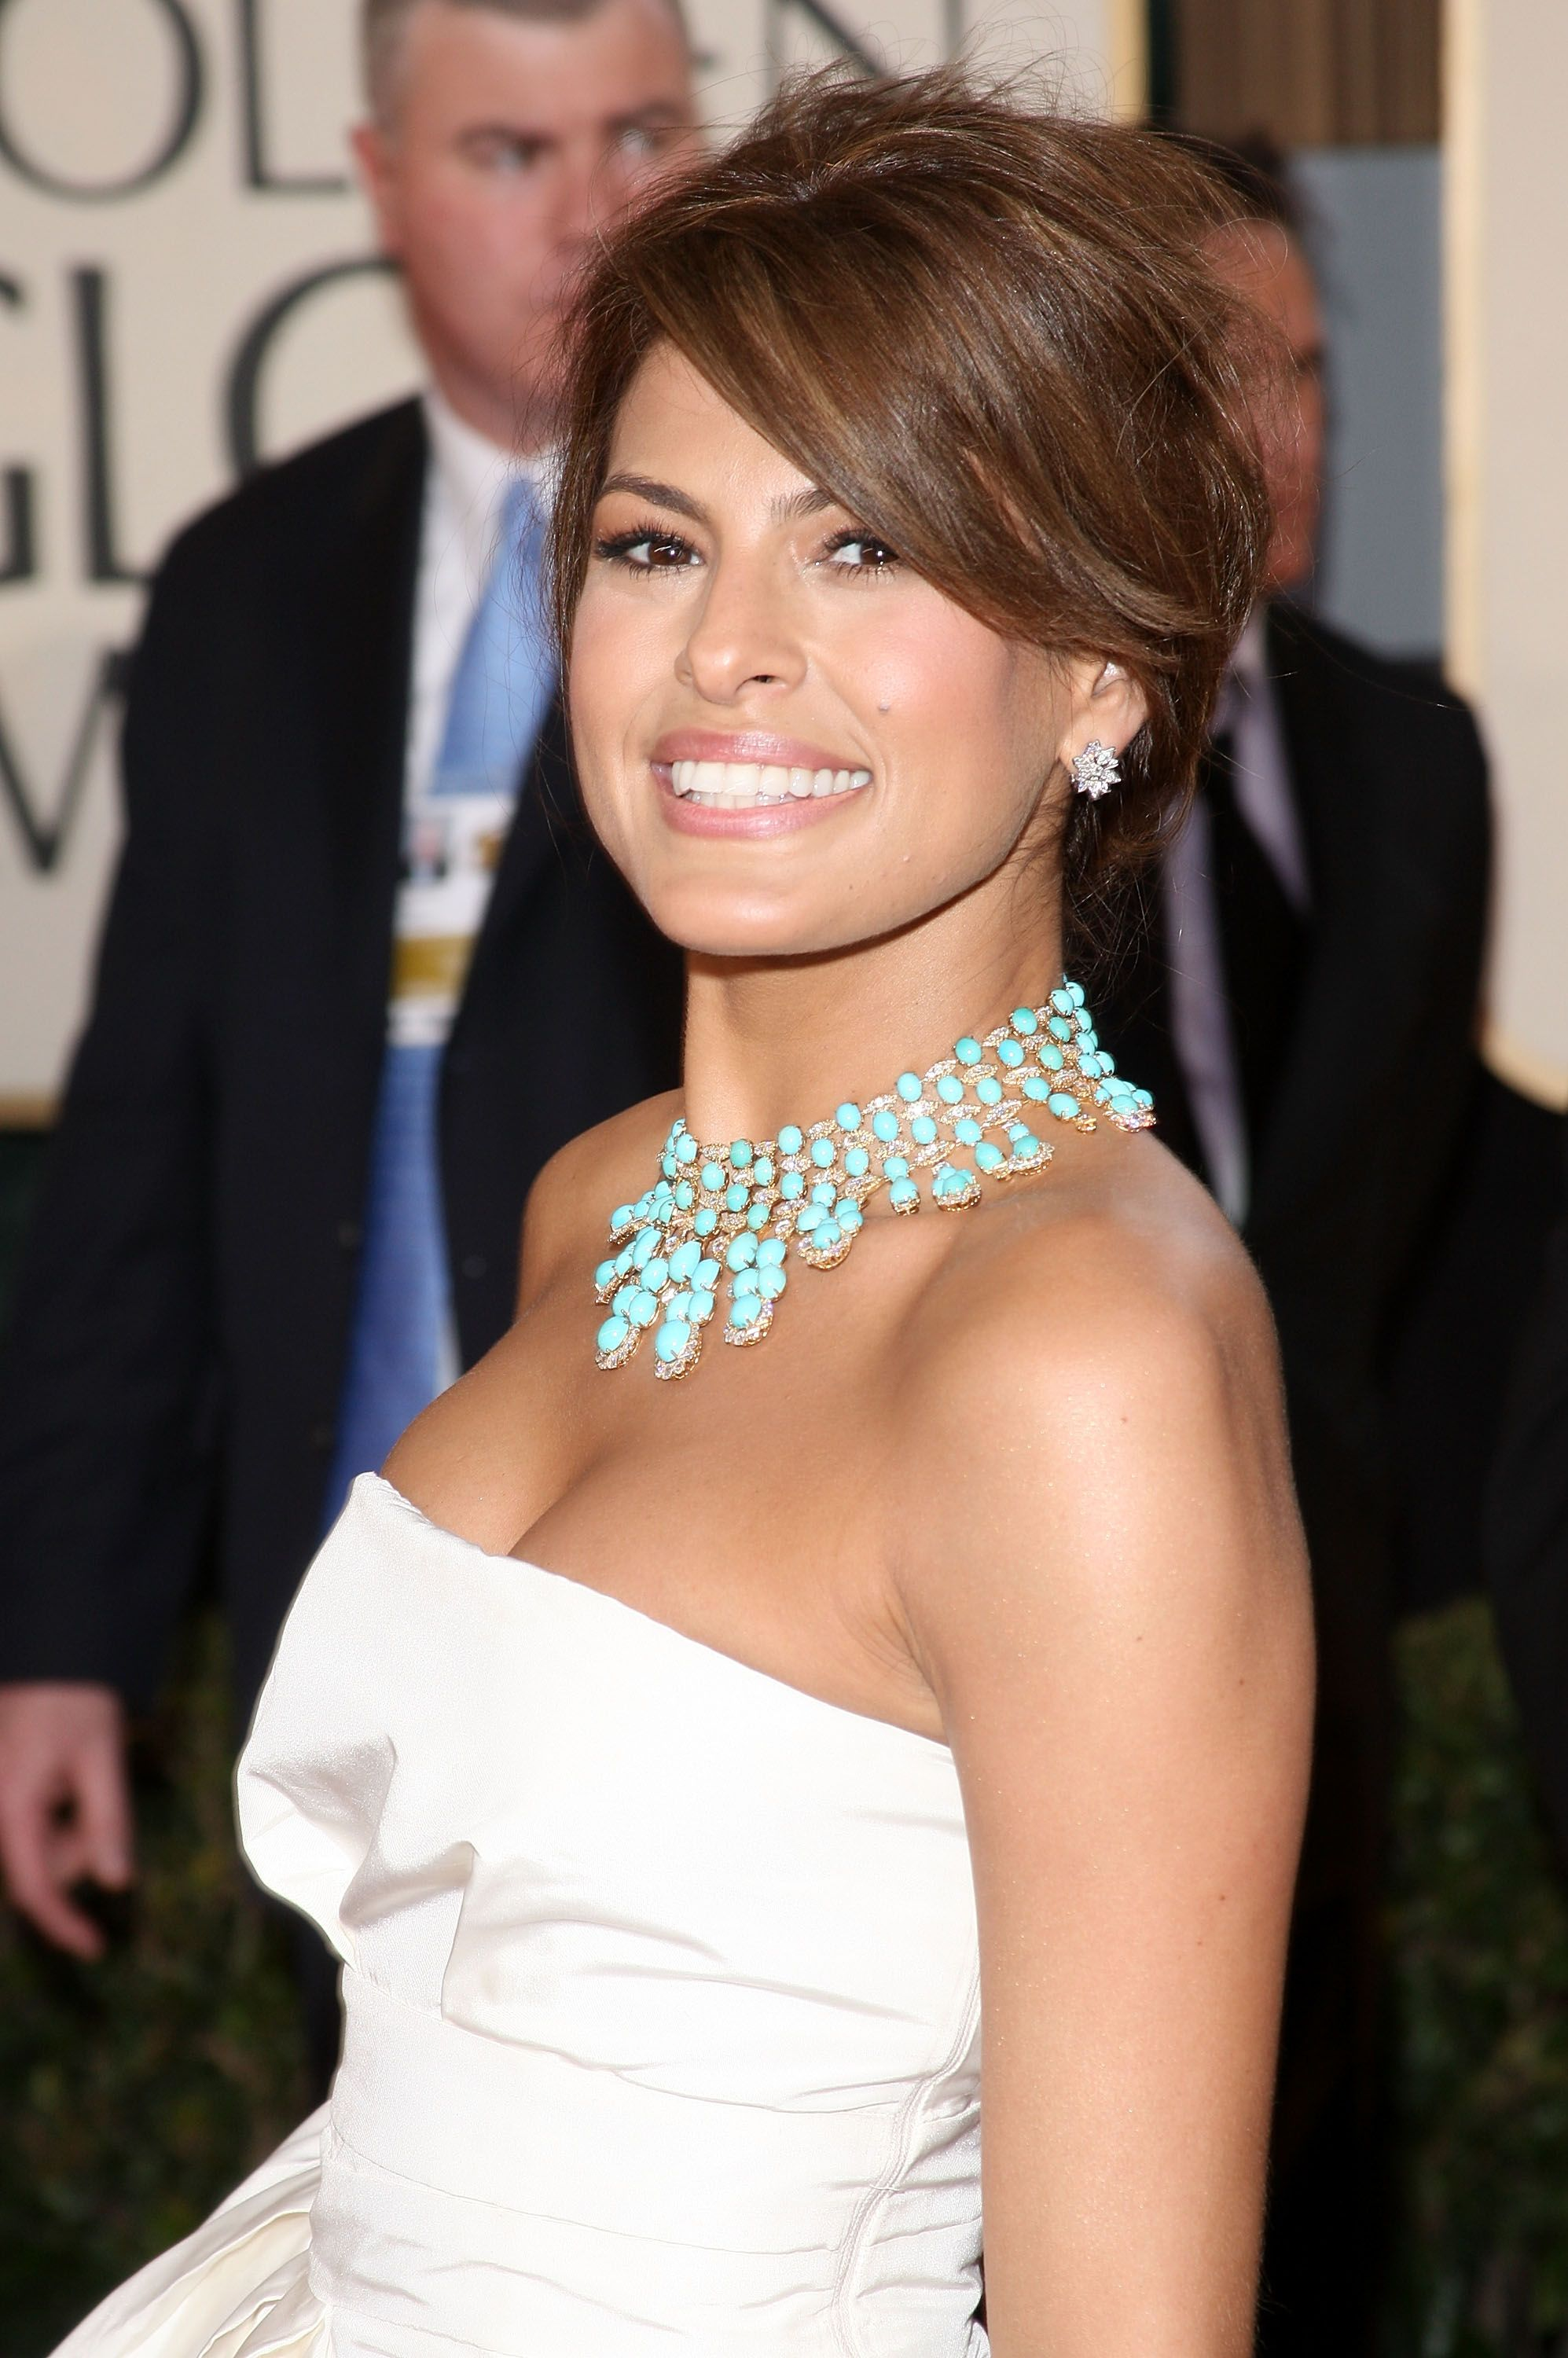 Eva Mendes Strapless White Prom Dress 66th Annual Golden ...